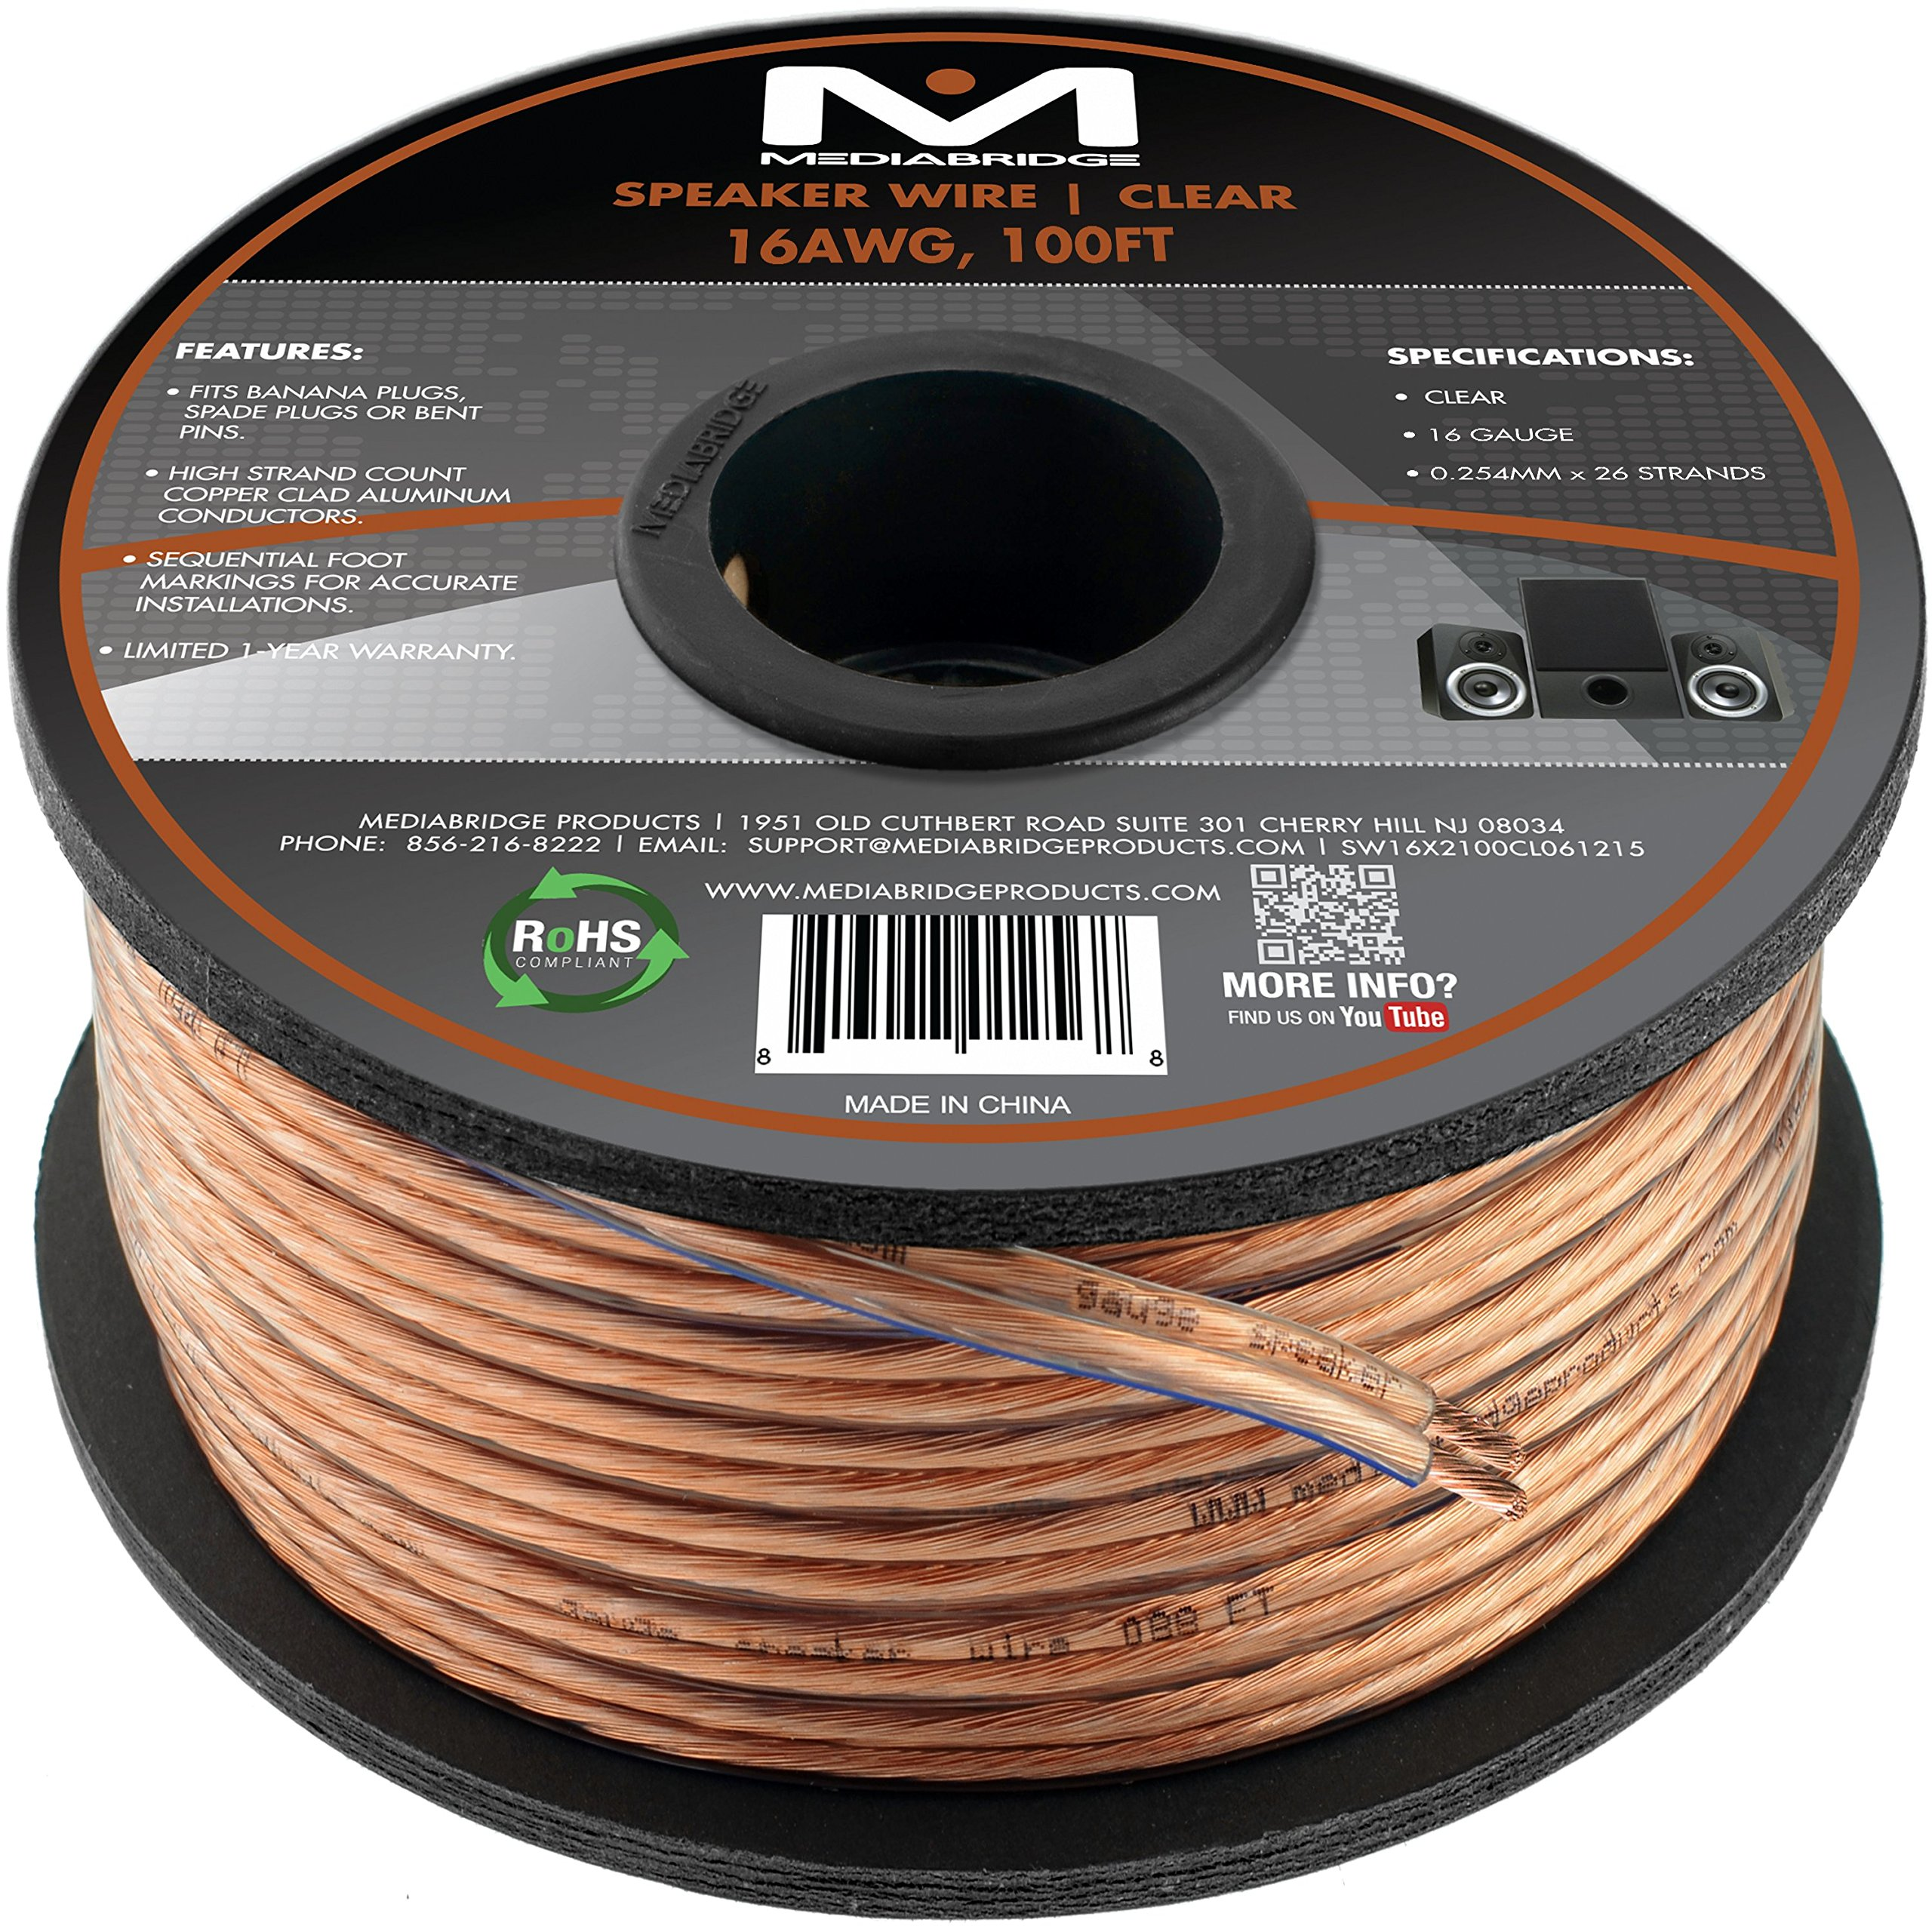 Best rated in speaker cables helpful customer reviews amazon mediabridge 16awg 2 conductor speaker wire 100 feet clear spooled design with sequential foot markings part sw 16x2 100 cl keyboard keysfo